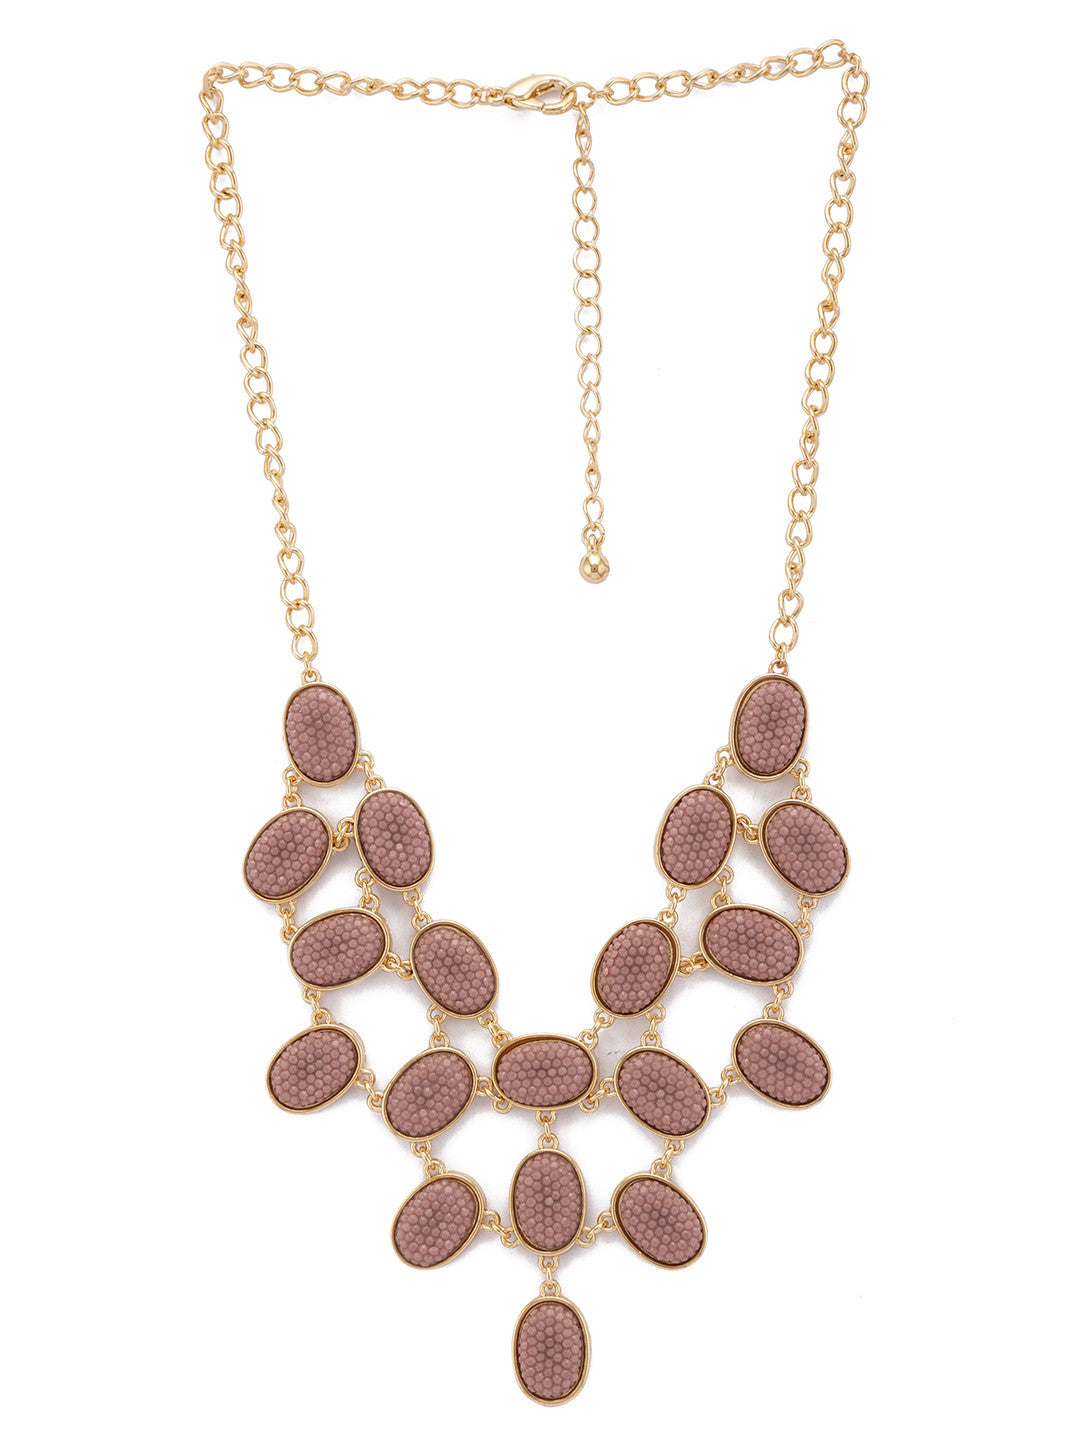 Gold Stones and Beads Necklace-1